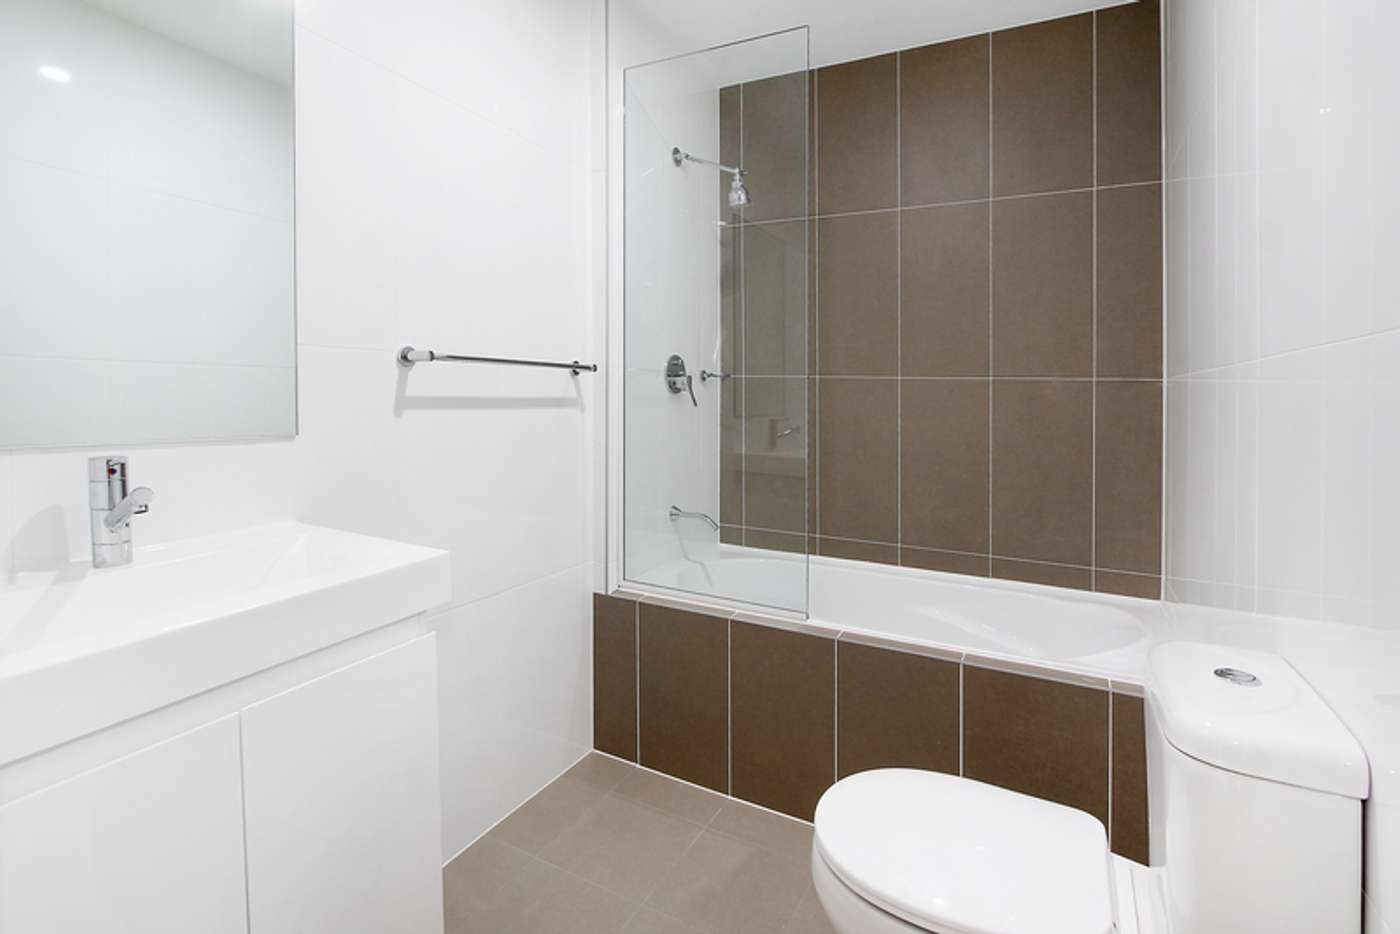 Sixth view of Homely unit listing, 15/8-12 Linden Street, Toongabbie NSW 2146